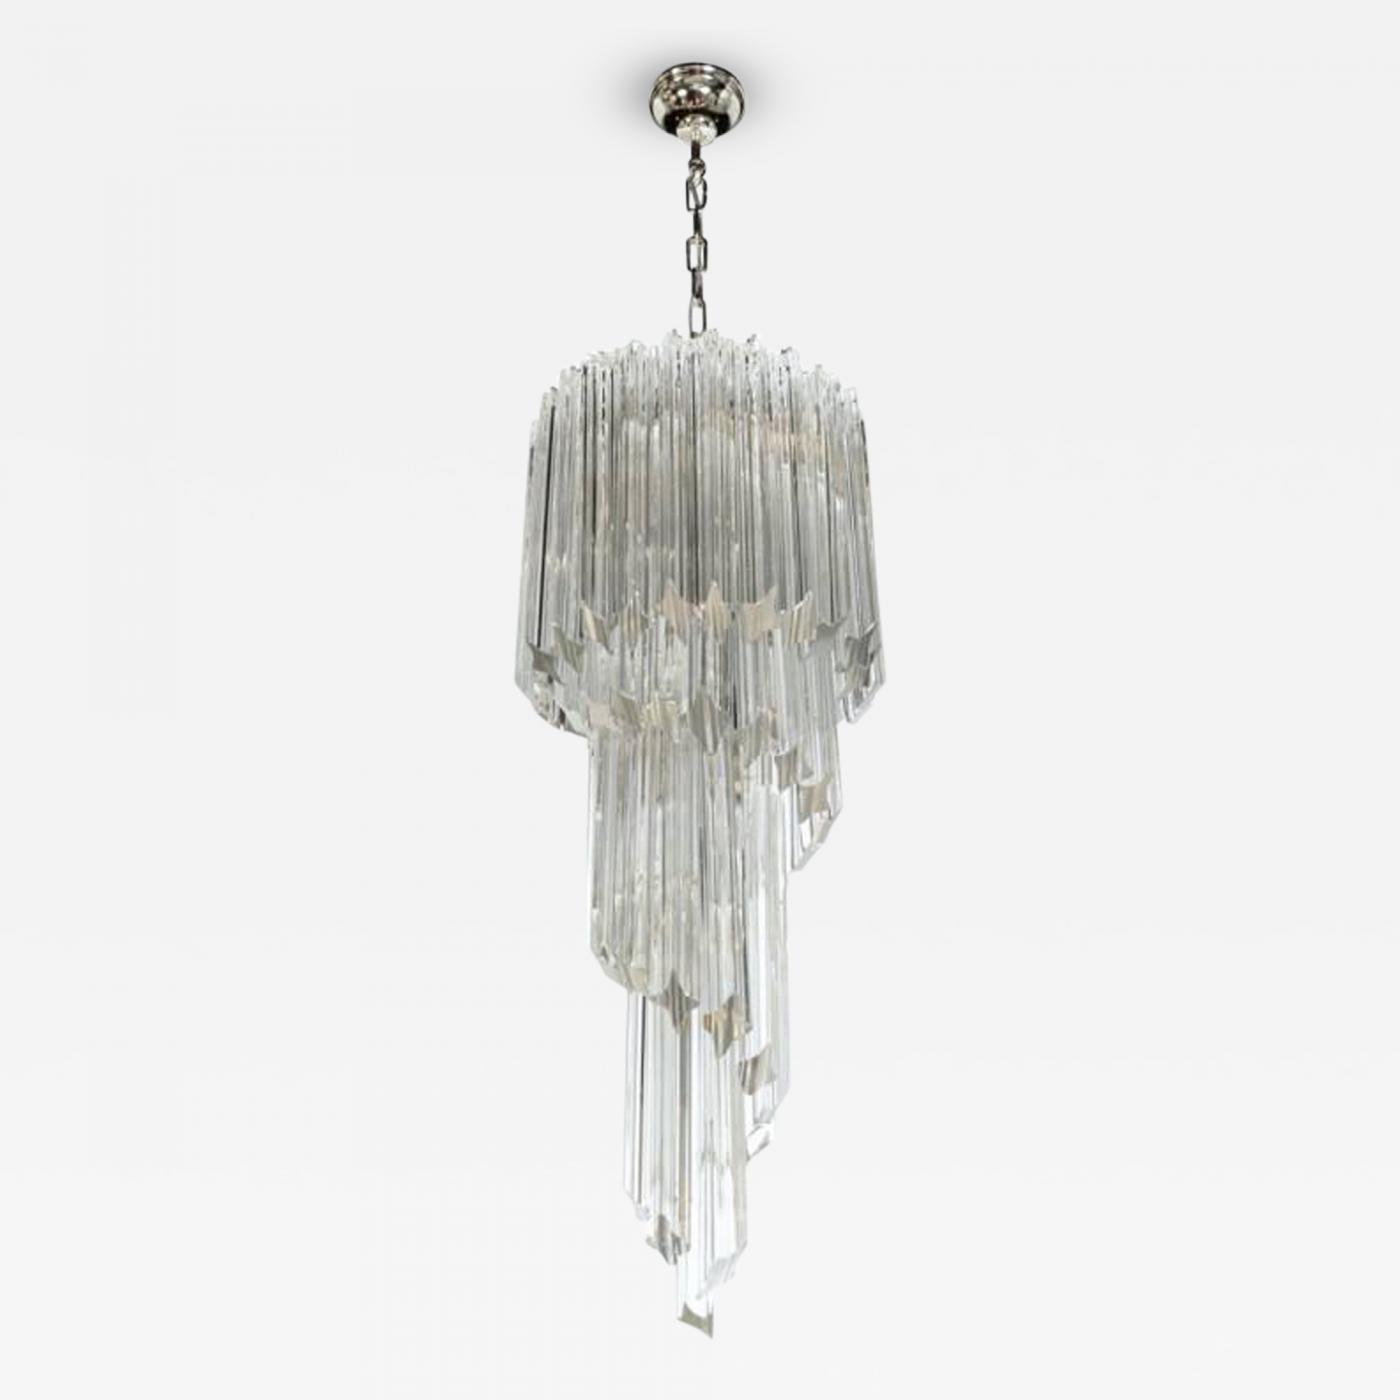 Camer glass 1960s camer crystal spiral chandelier listings furniture lighting chandeliers and pendants aloadofball Image collections